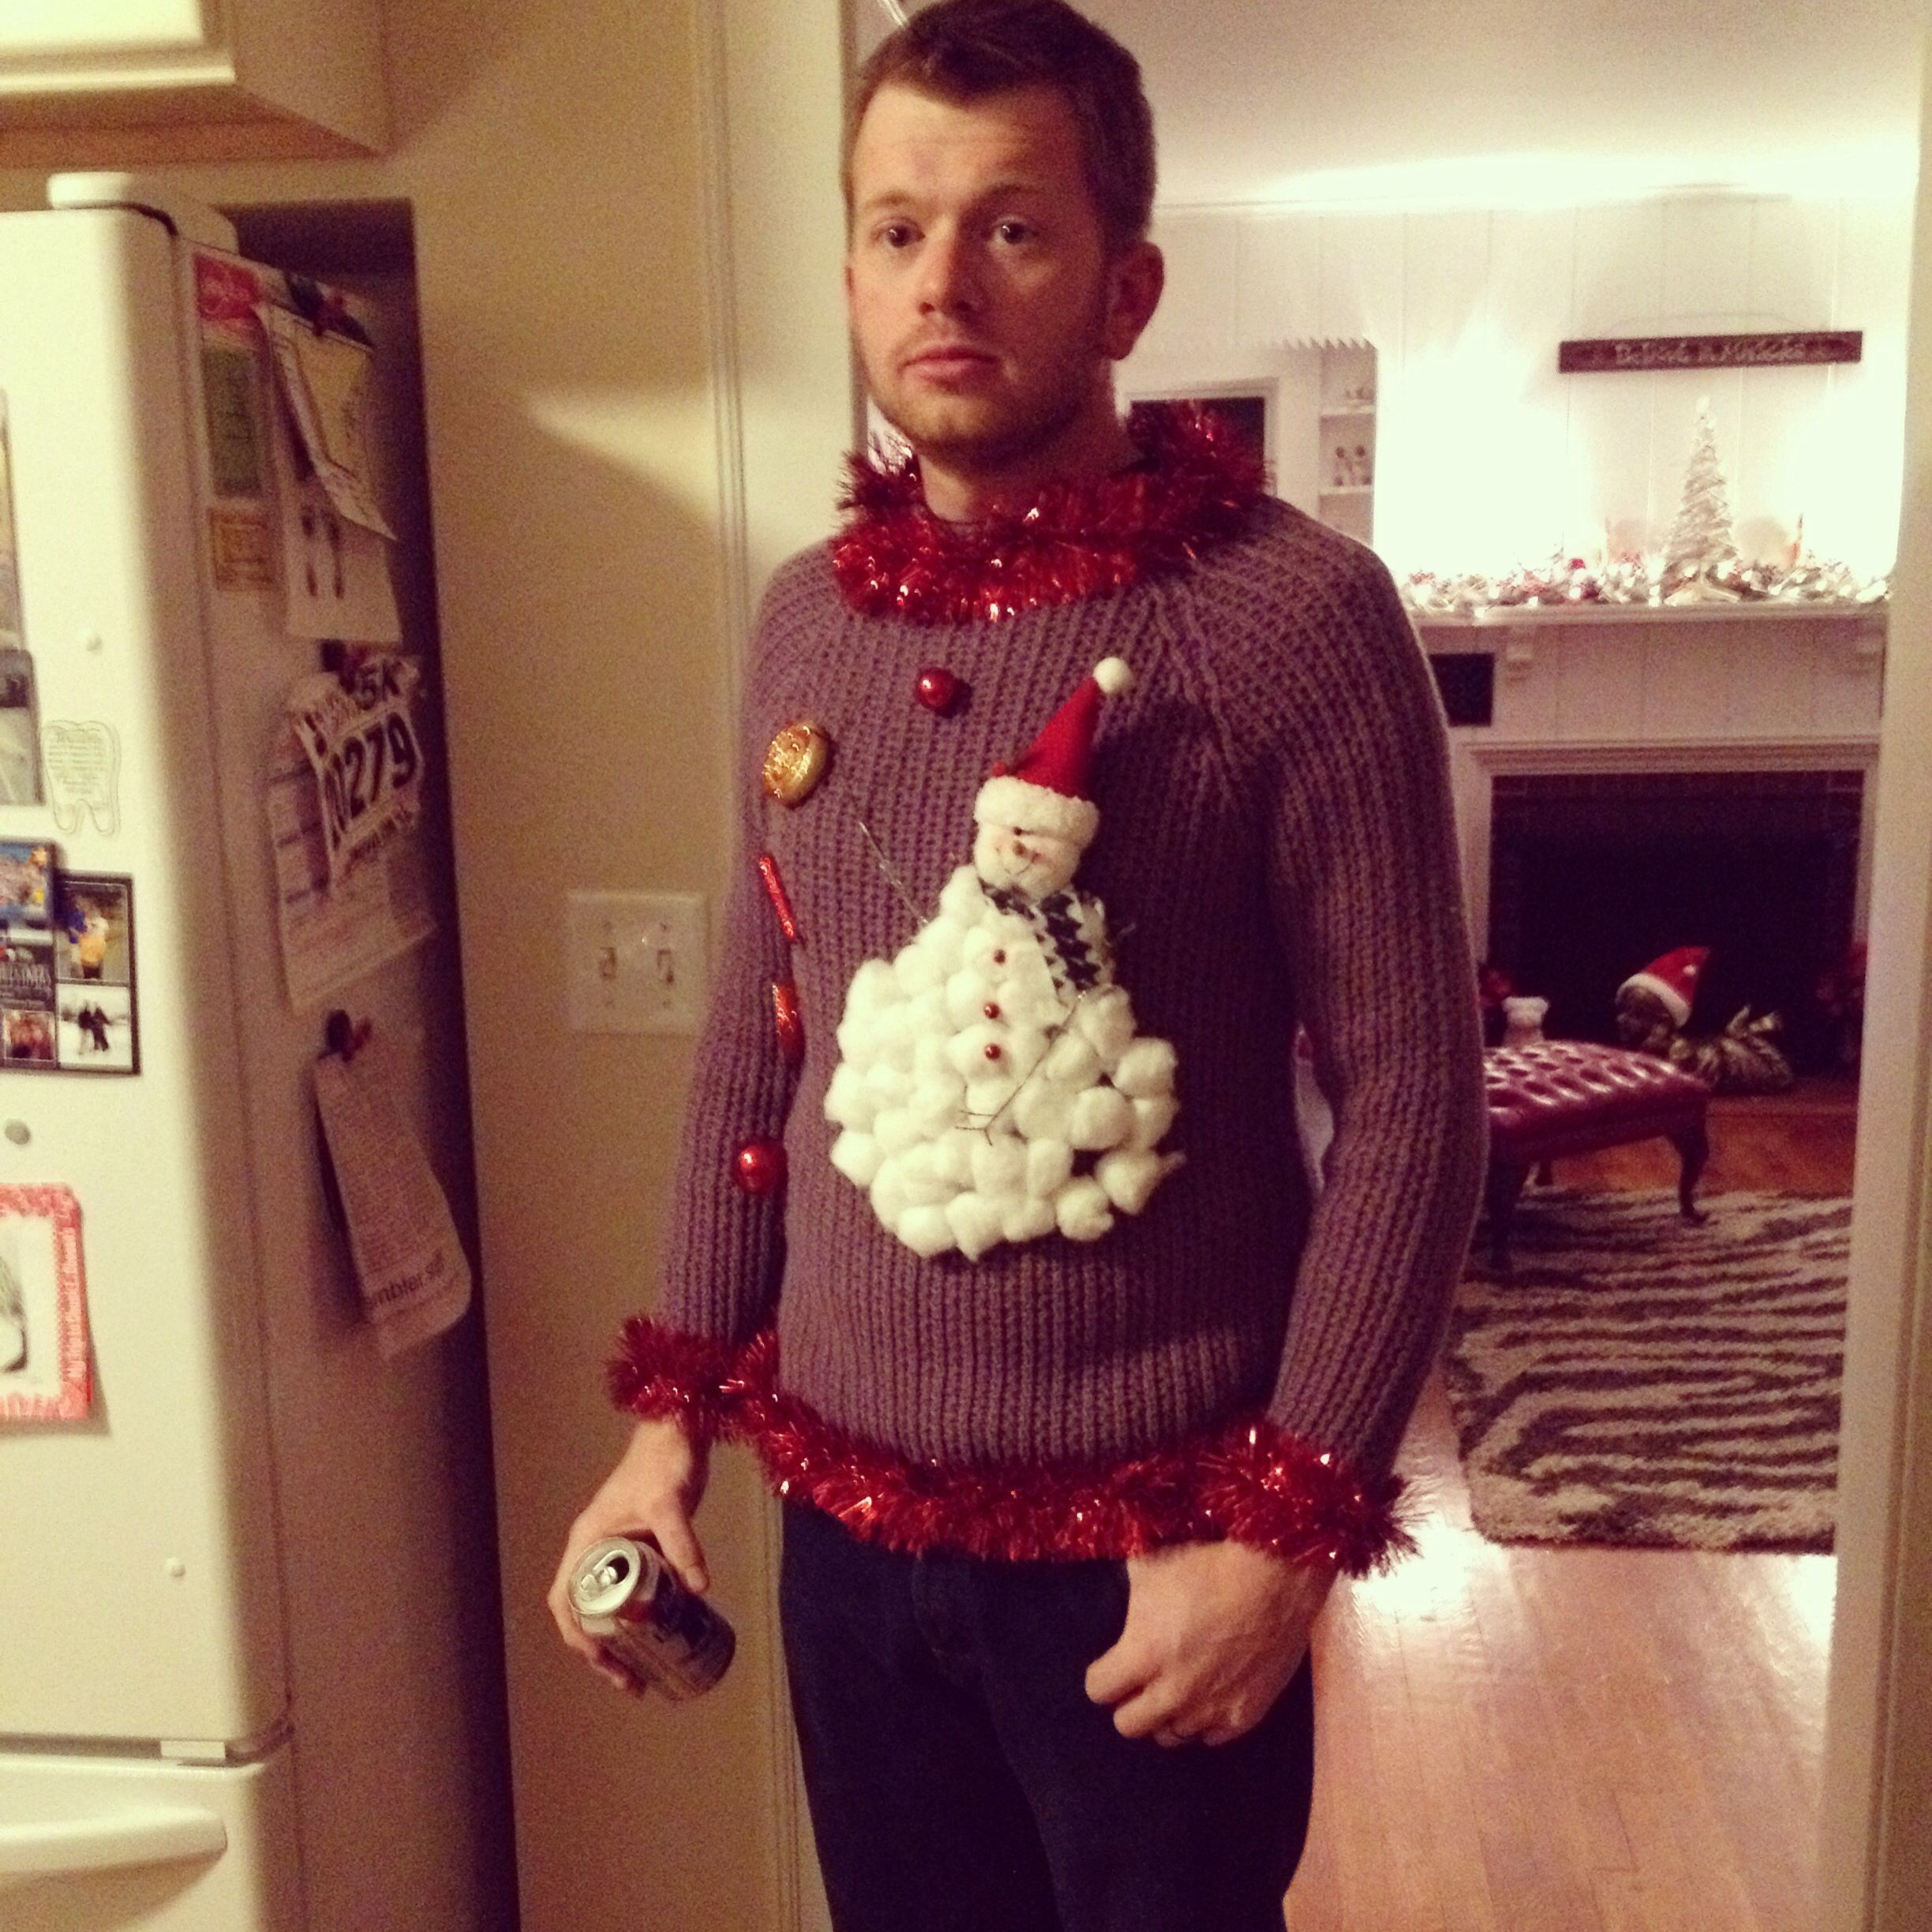 Best homemade ugly Christmas sweater!!! Christmas